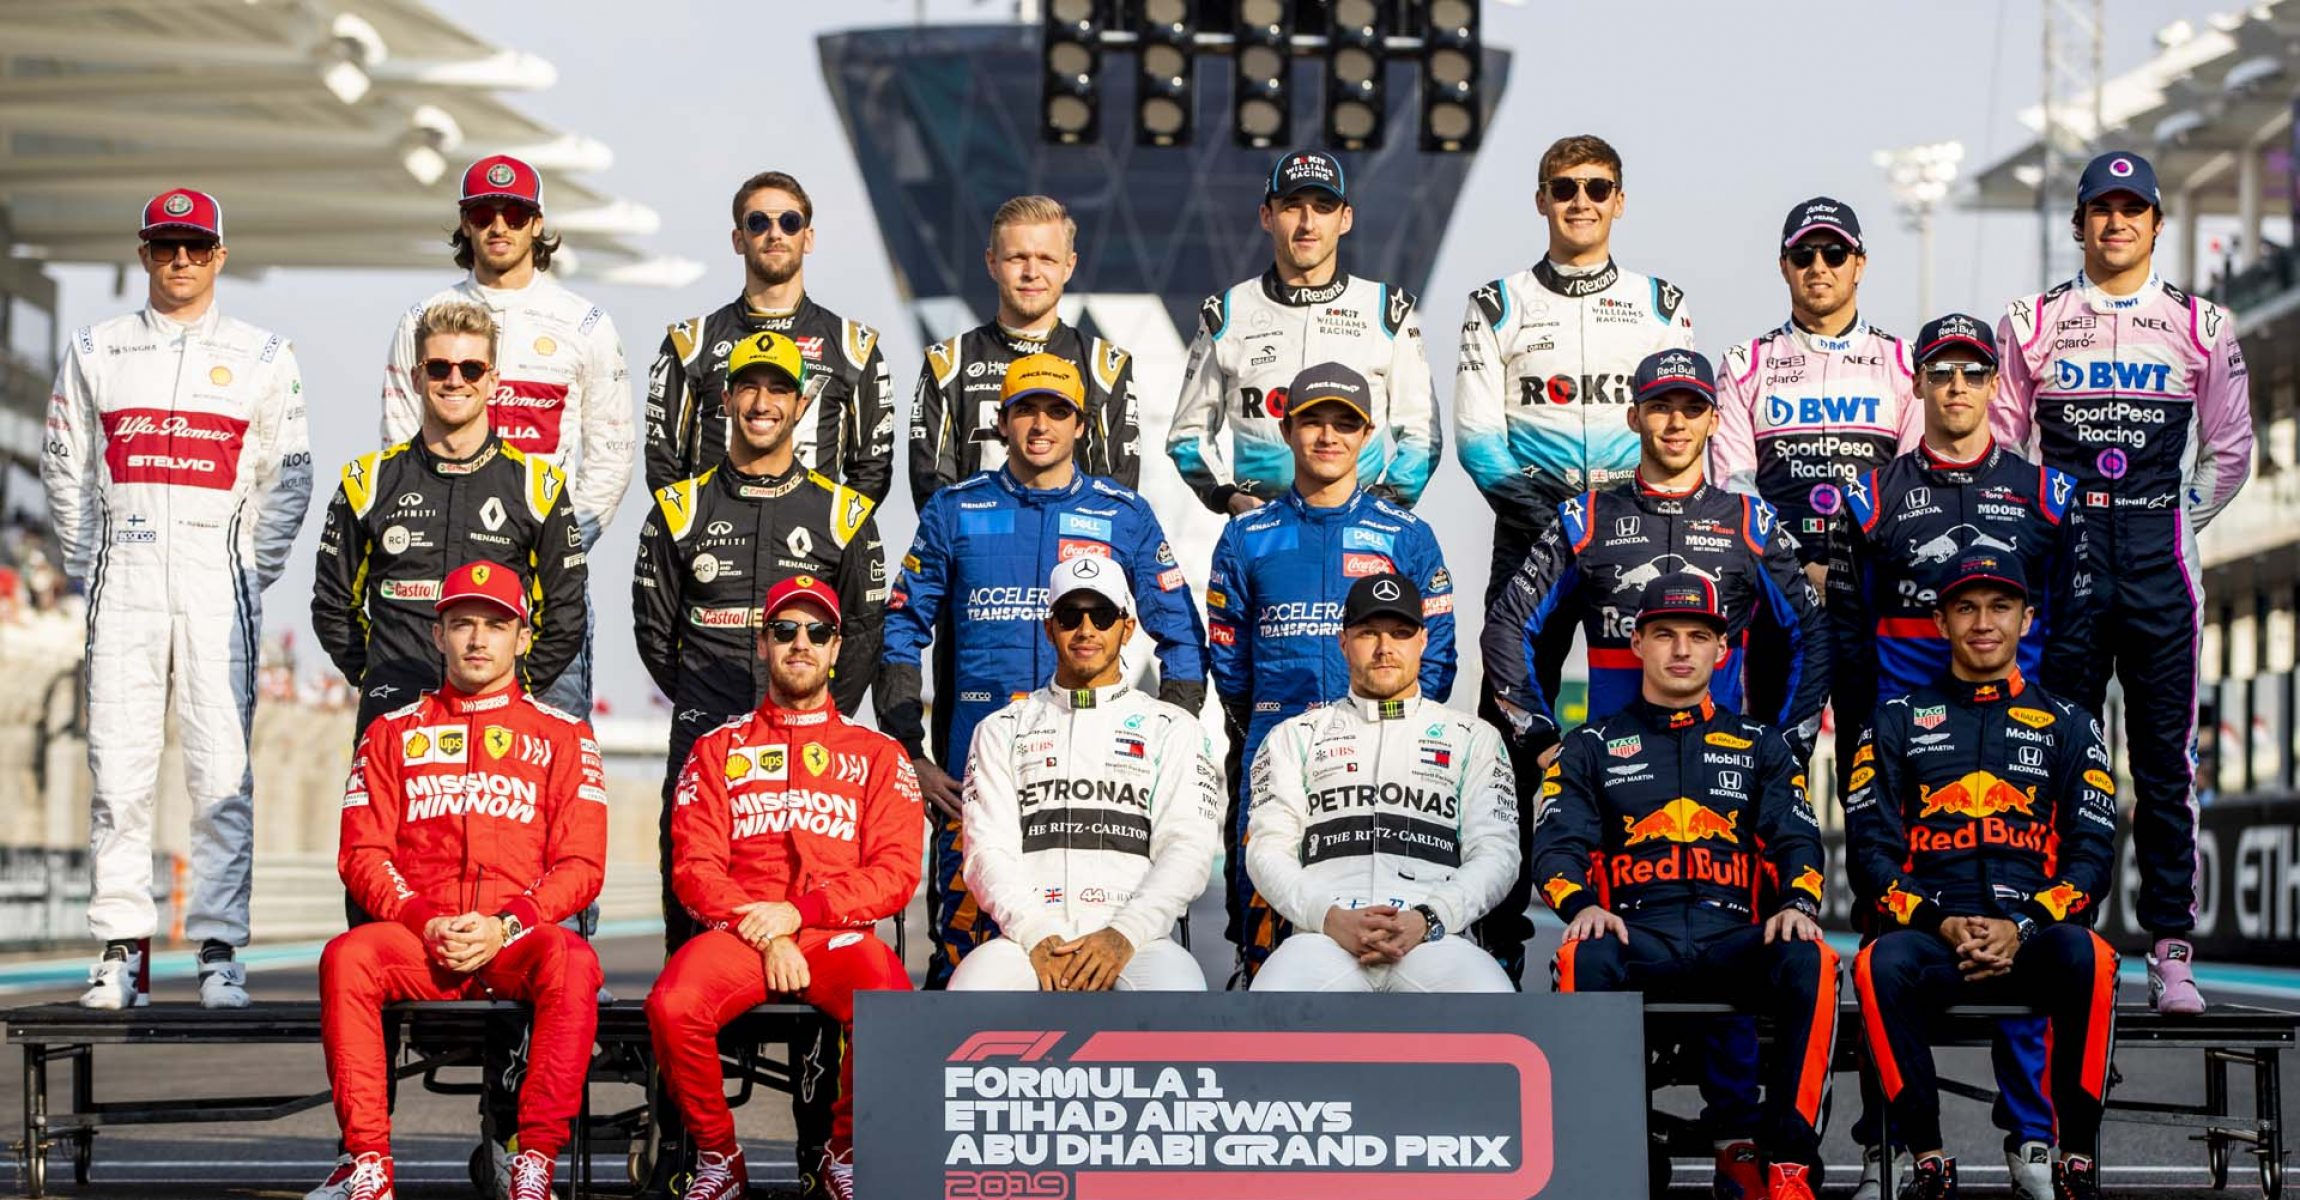 ABU DHABI, UNITED ARAB EMIRATES - DECEMBER 01: The F1 Drivers Class of 2019 photo is taken on track before the F1 Grand Prix of Abu Dhabi at Yas Marina Circuit on December 01, 2019 in Abu Dhabi, United Arab Emirates. Scuderia Toro Rosso (Photo by Dan Istitene/Getty Images) // Getty Images / Red Bull Content Pool  // AP-22BTQ55492111 // Usage for editorial use only //